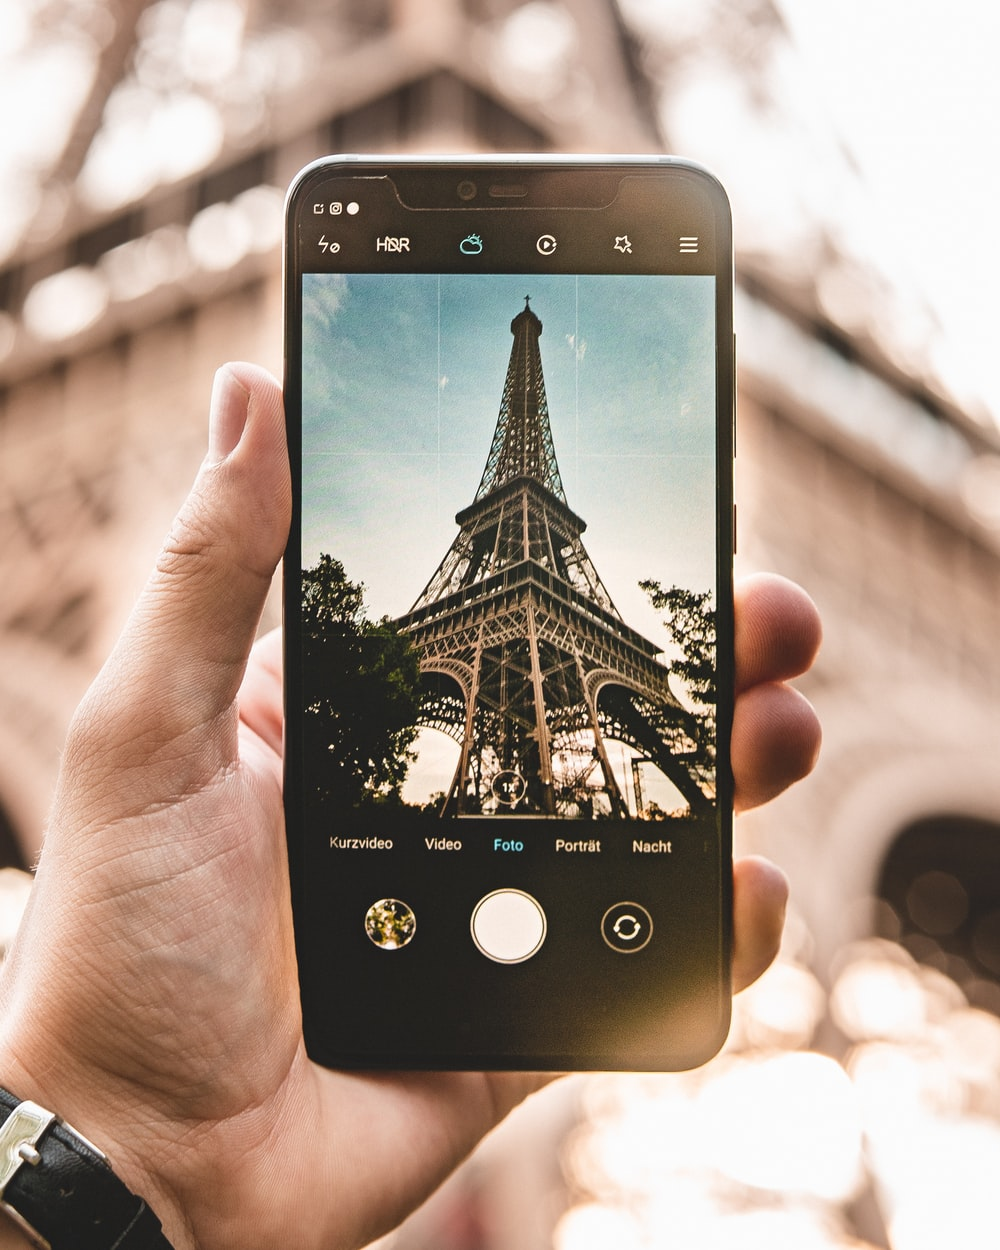 smartphone with Eiffel Tower during daytime photo